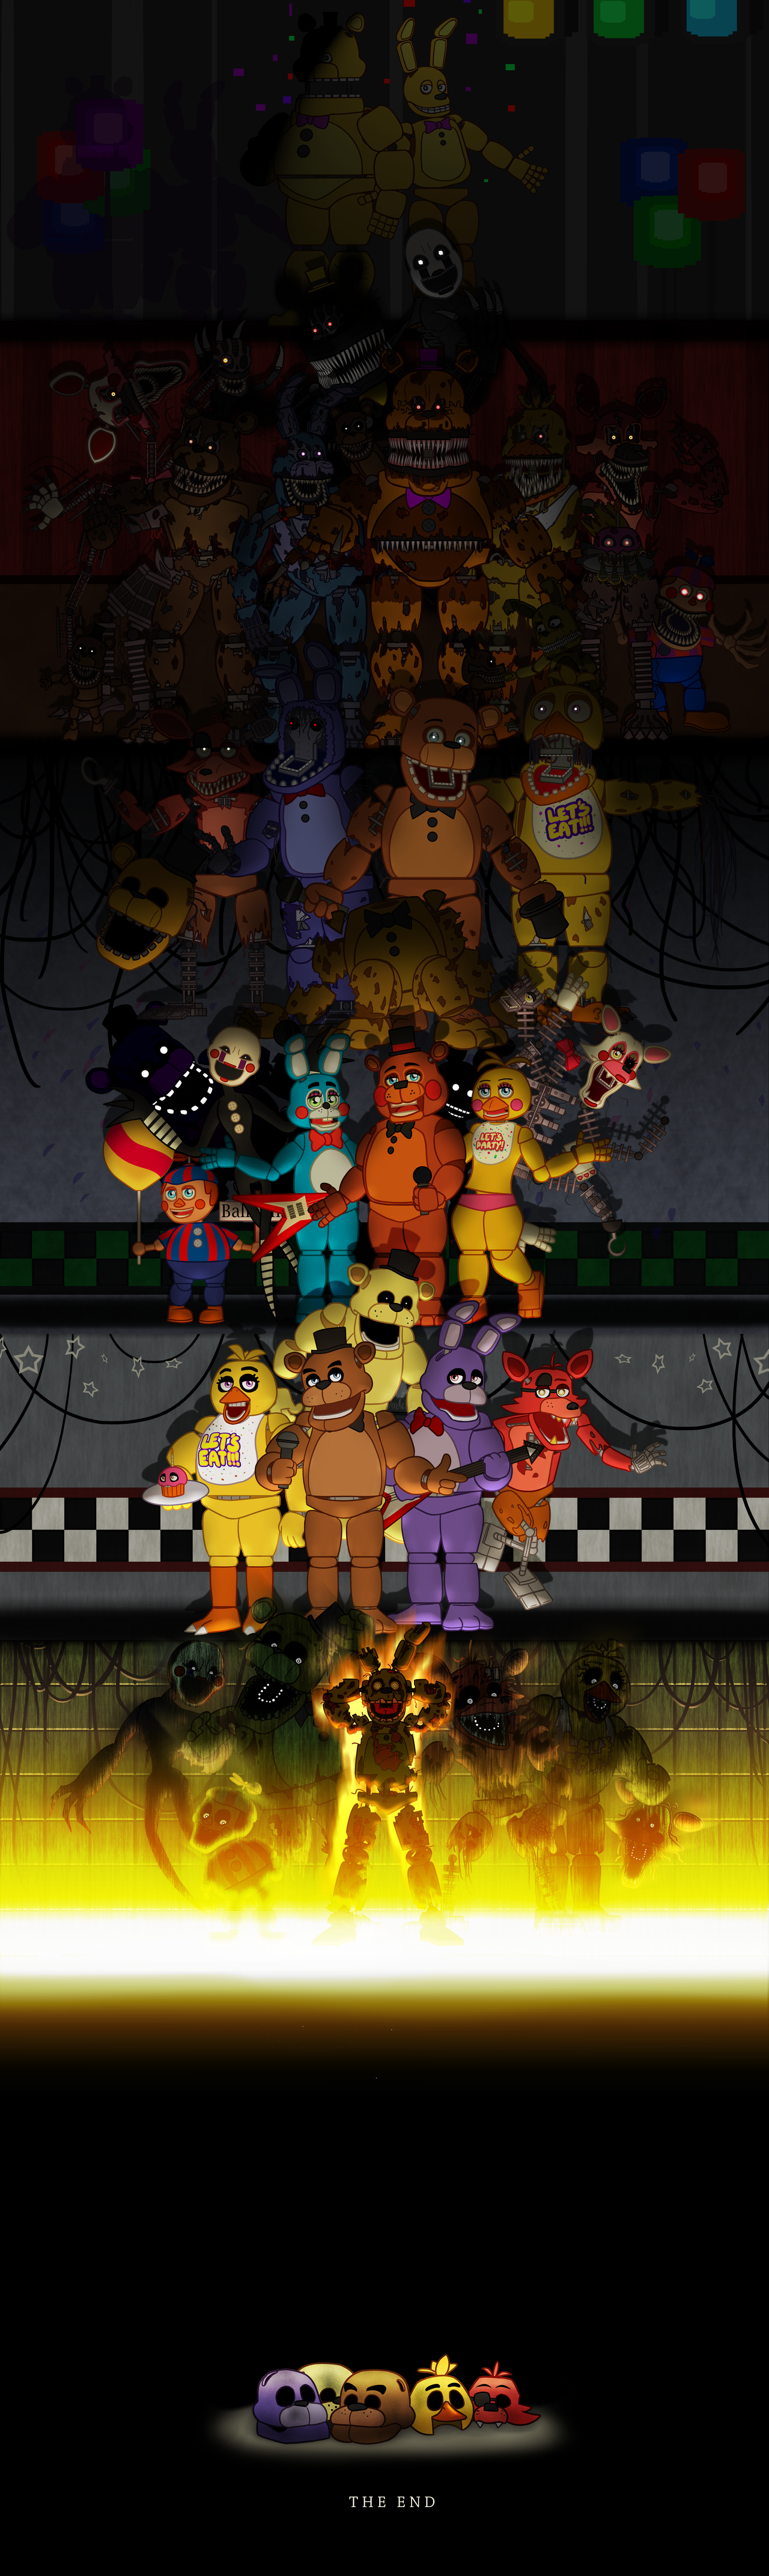 Fnaf 4 Story Line - Five nights at freddy s one of my new favorite games it has such a creepy storyline to it too and a mystery to it all which i seriously love